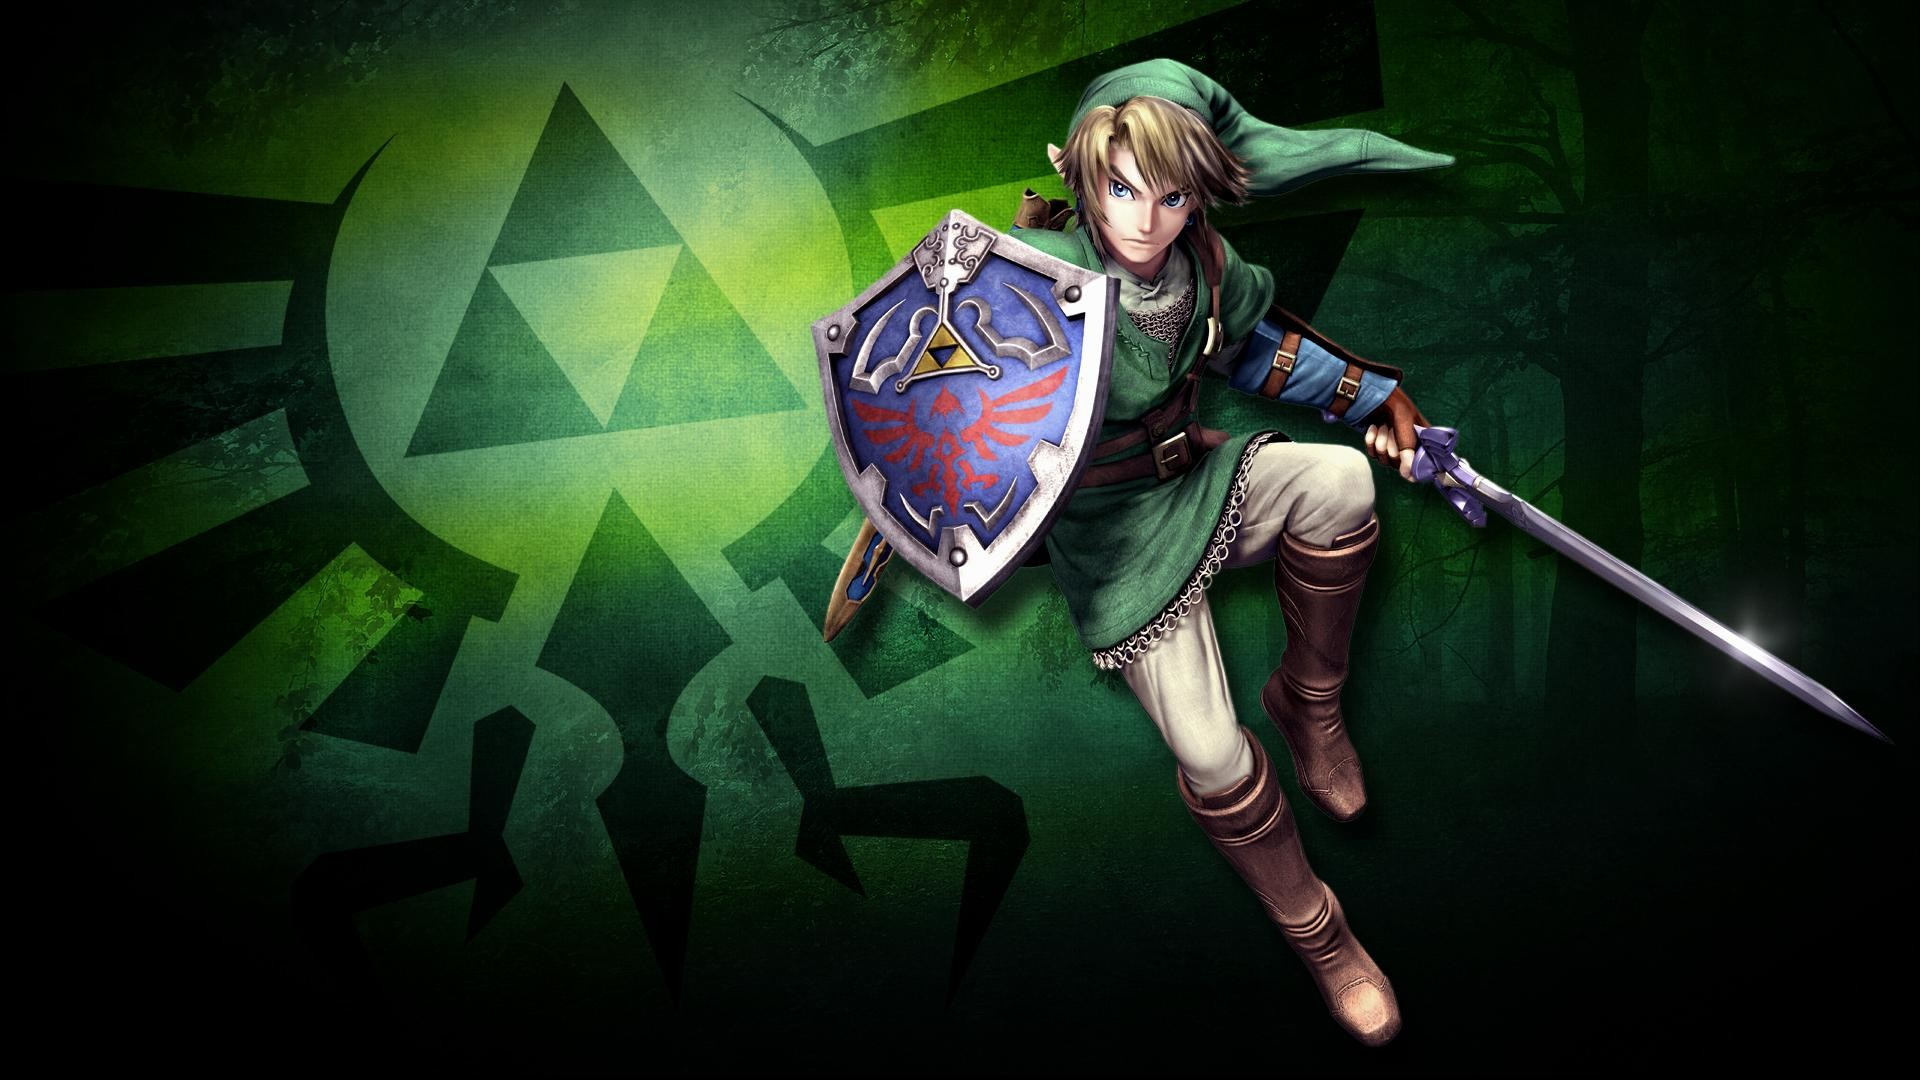 Triforce-Background-Free-Download